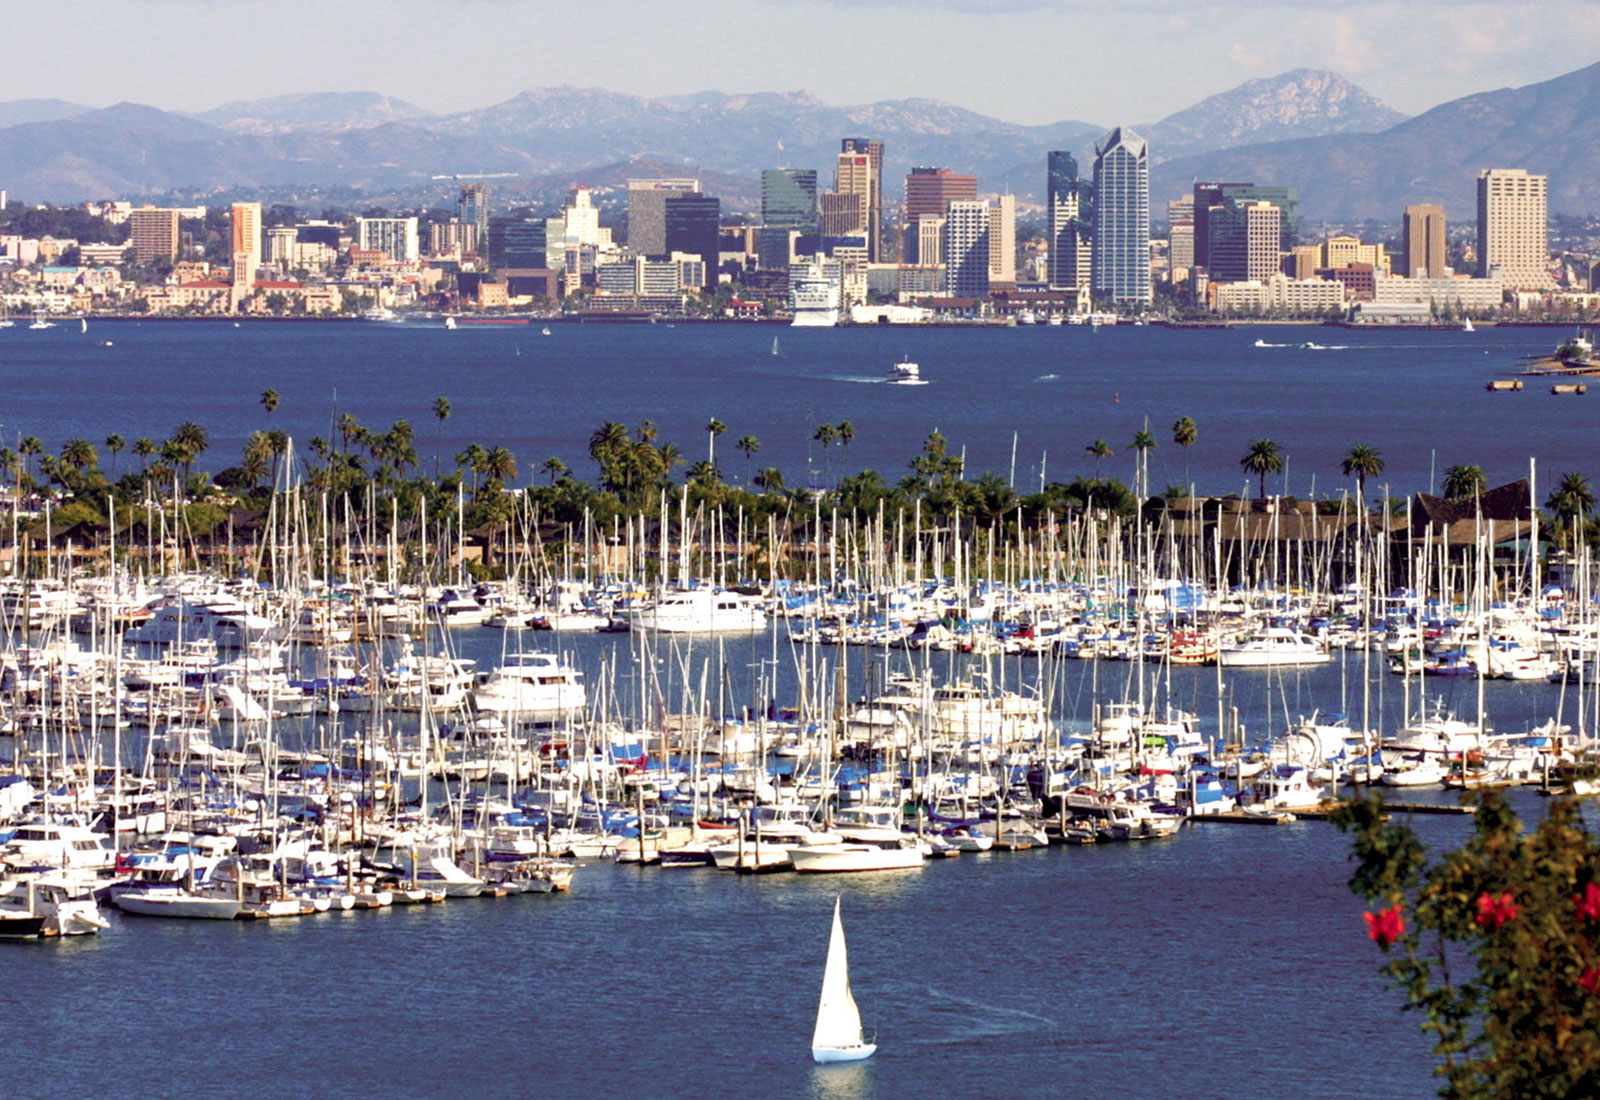 San Diego Harbor Cruises Boat Tours Amp Whale Watching Excursions